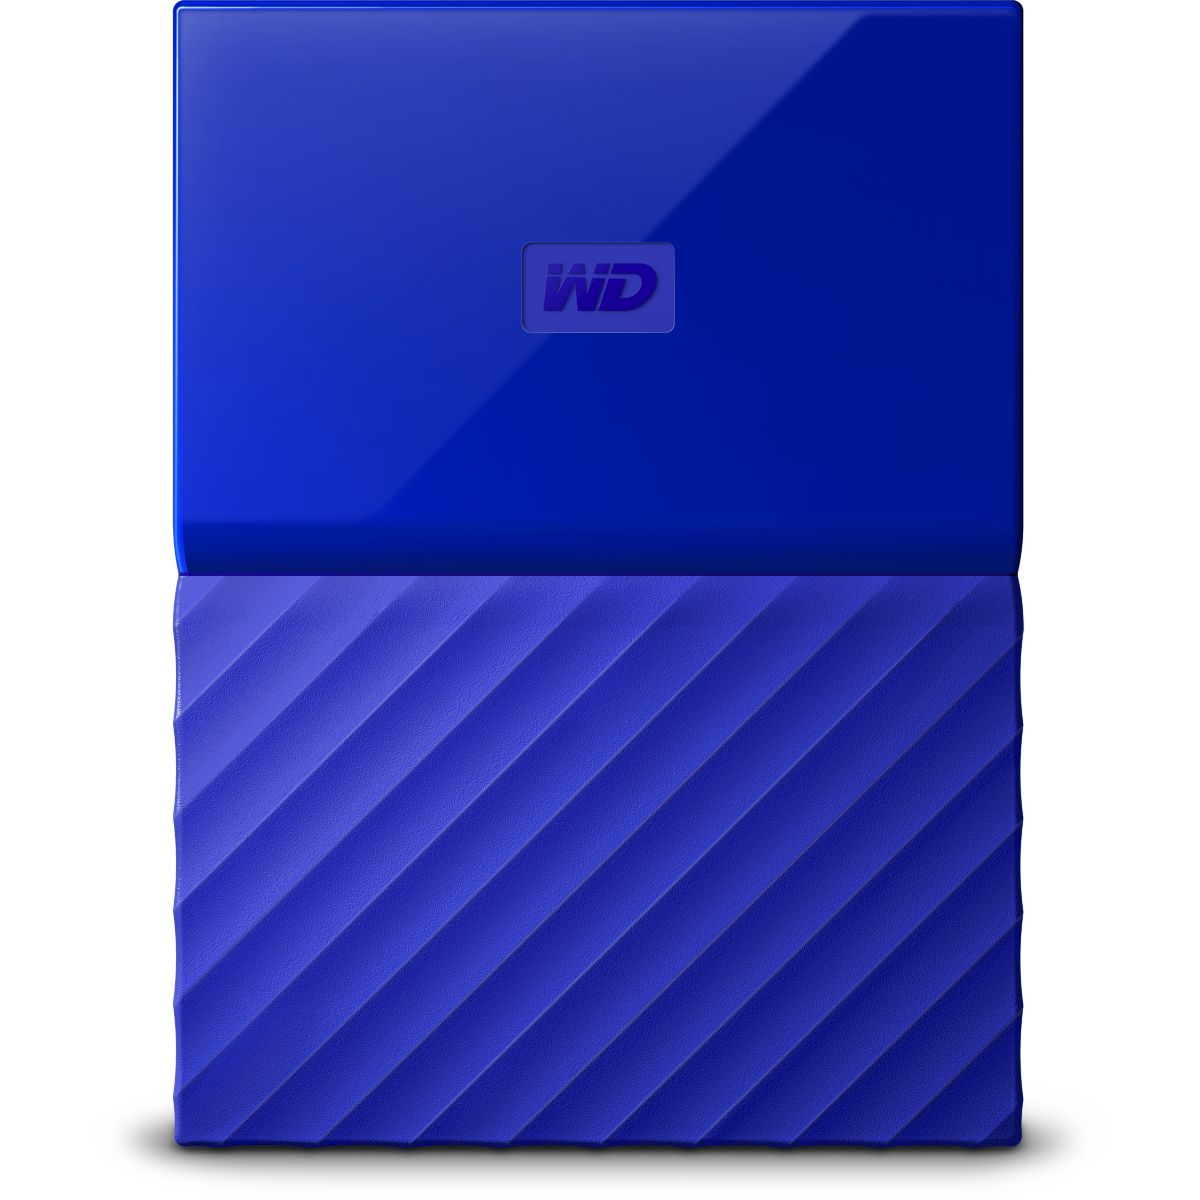 Disque WD 2,5'' 1 To My Passport Bleue N